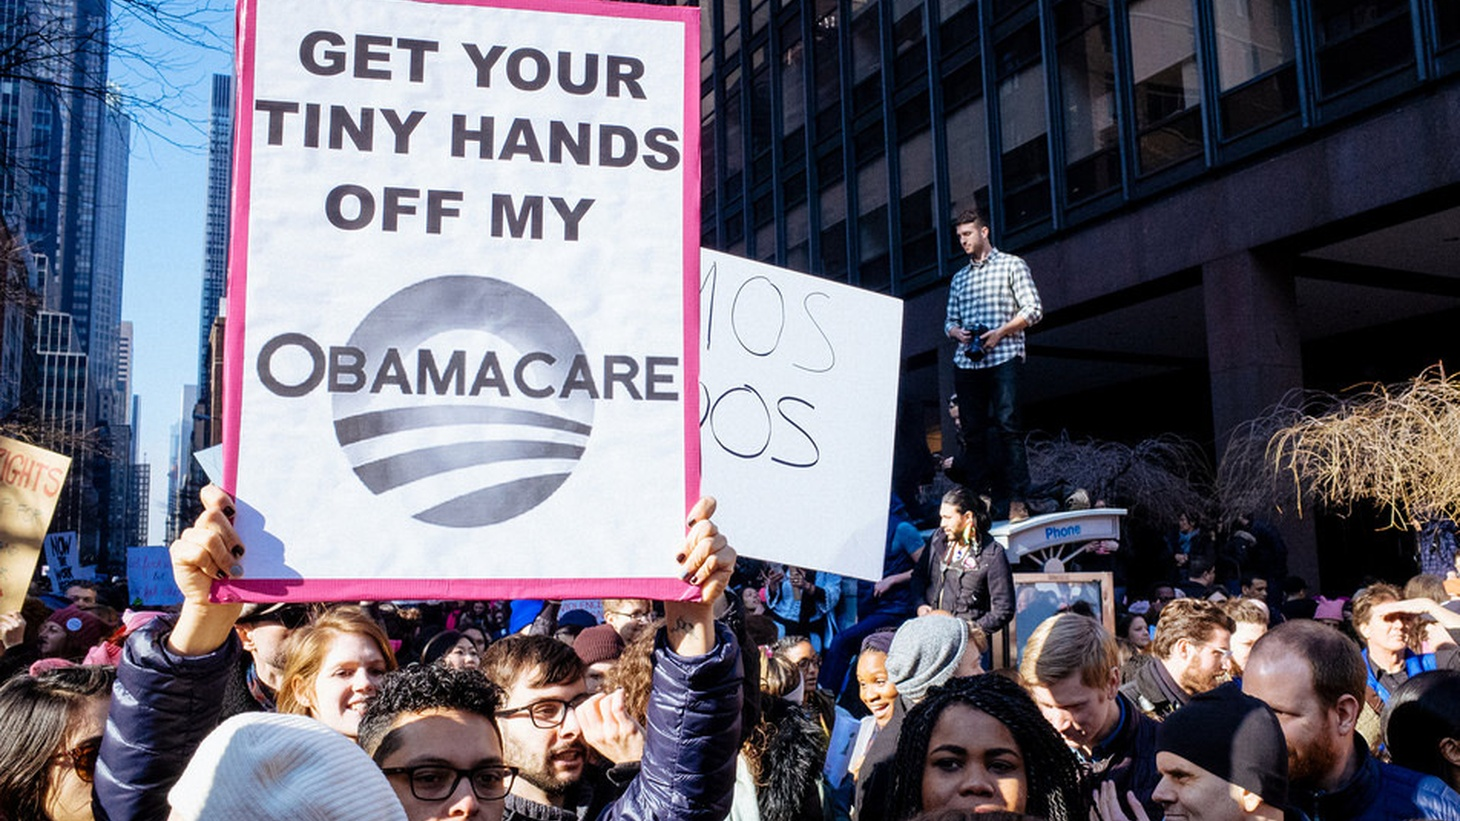 Uncertainty about the fate of Obamacare grows by the day, with key factors including bipartisanship in the Senate, opposition deeper than ever in Congress -- and a president who veers from one side to the other. We talk with Maryland's attorney general and others about what's at stake from the state house to the doctor's office.